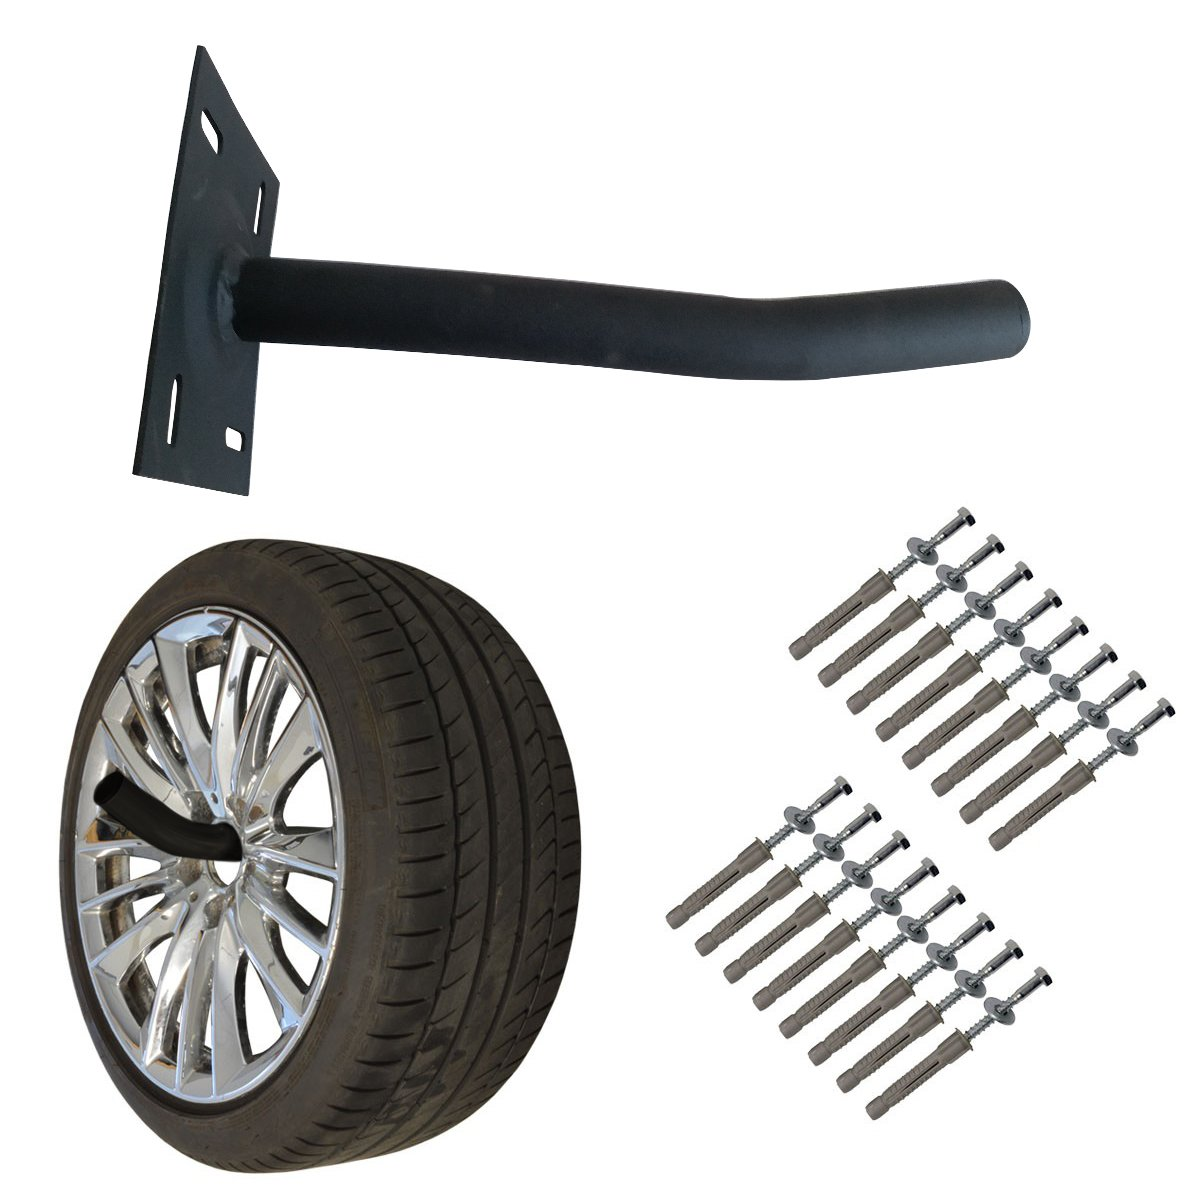 Wheel Hangers Set - Wall Mount Tire Rack Alternative - Space Saving Wheel Storage for Garage Shed, 4 Pack DCP Resources TIRERACKL14